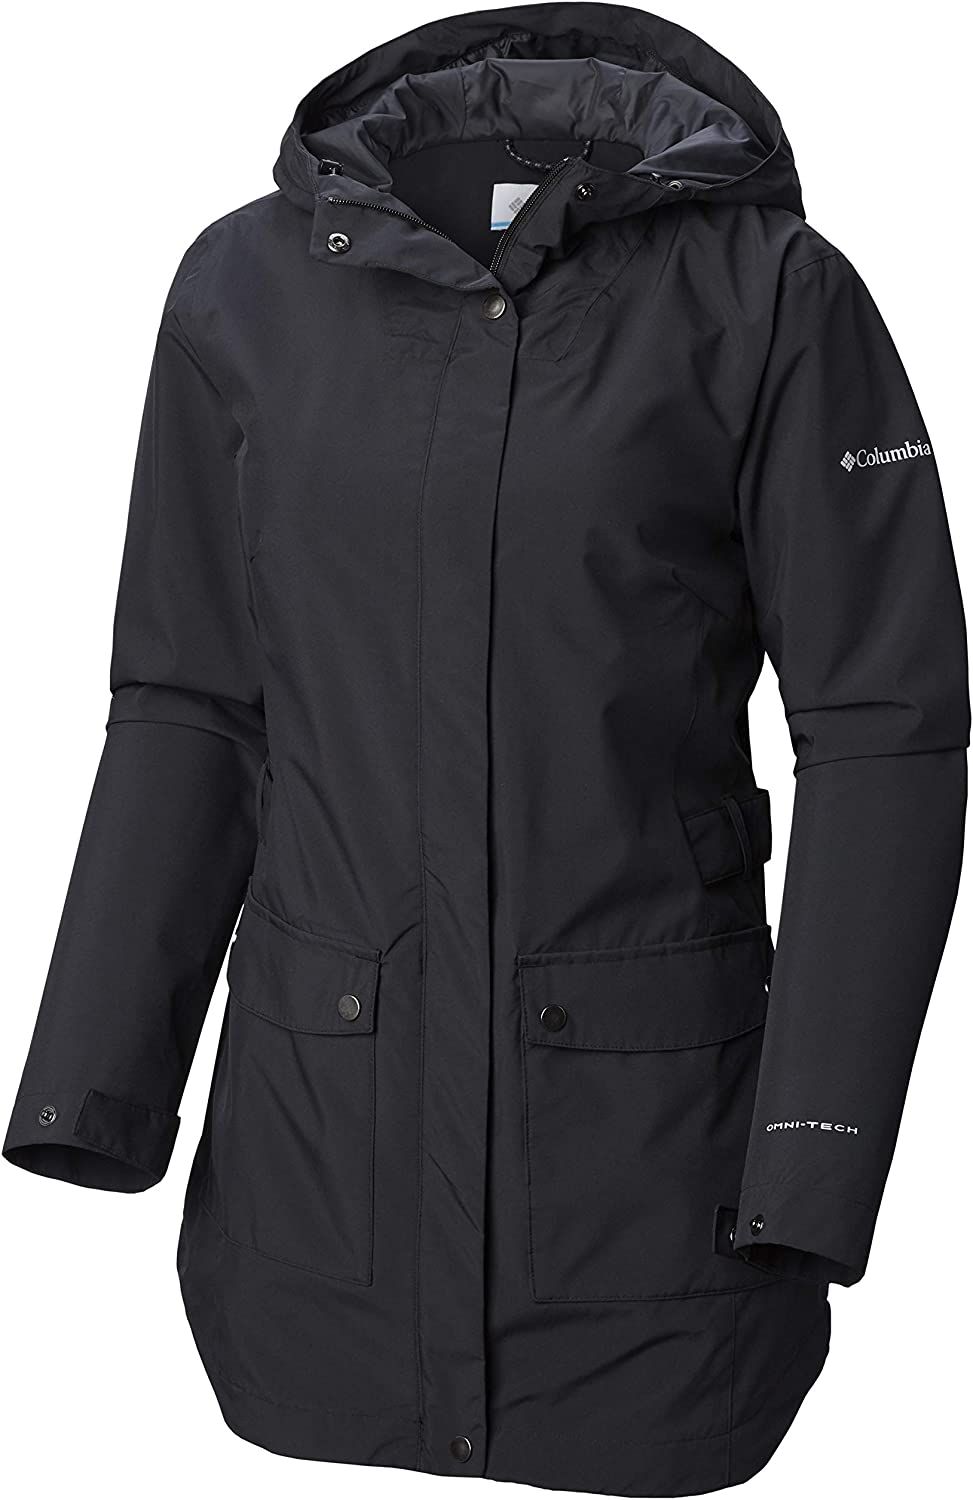 Columbia Women's Here And There Trench Jacket: Clothing